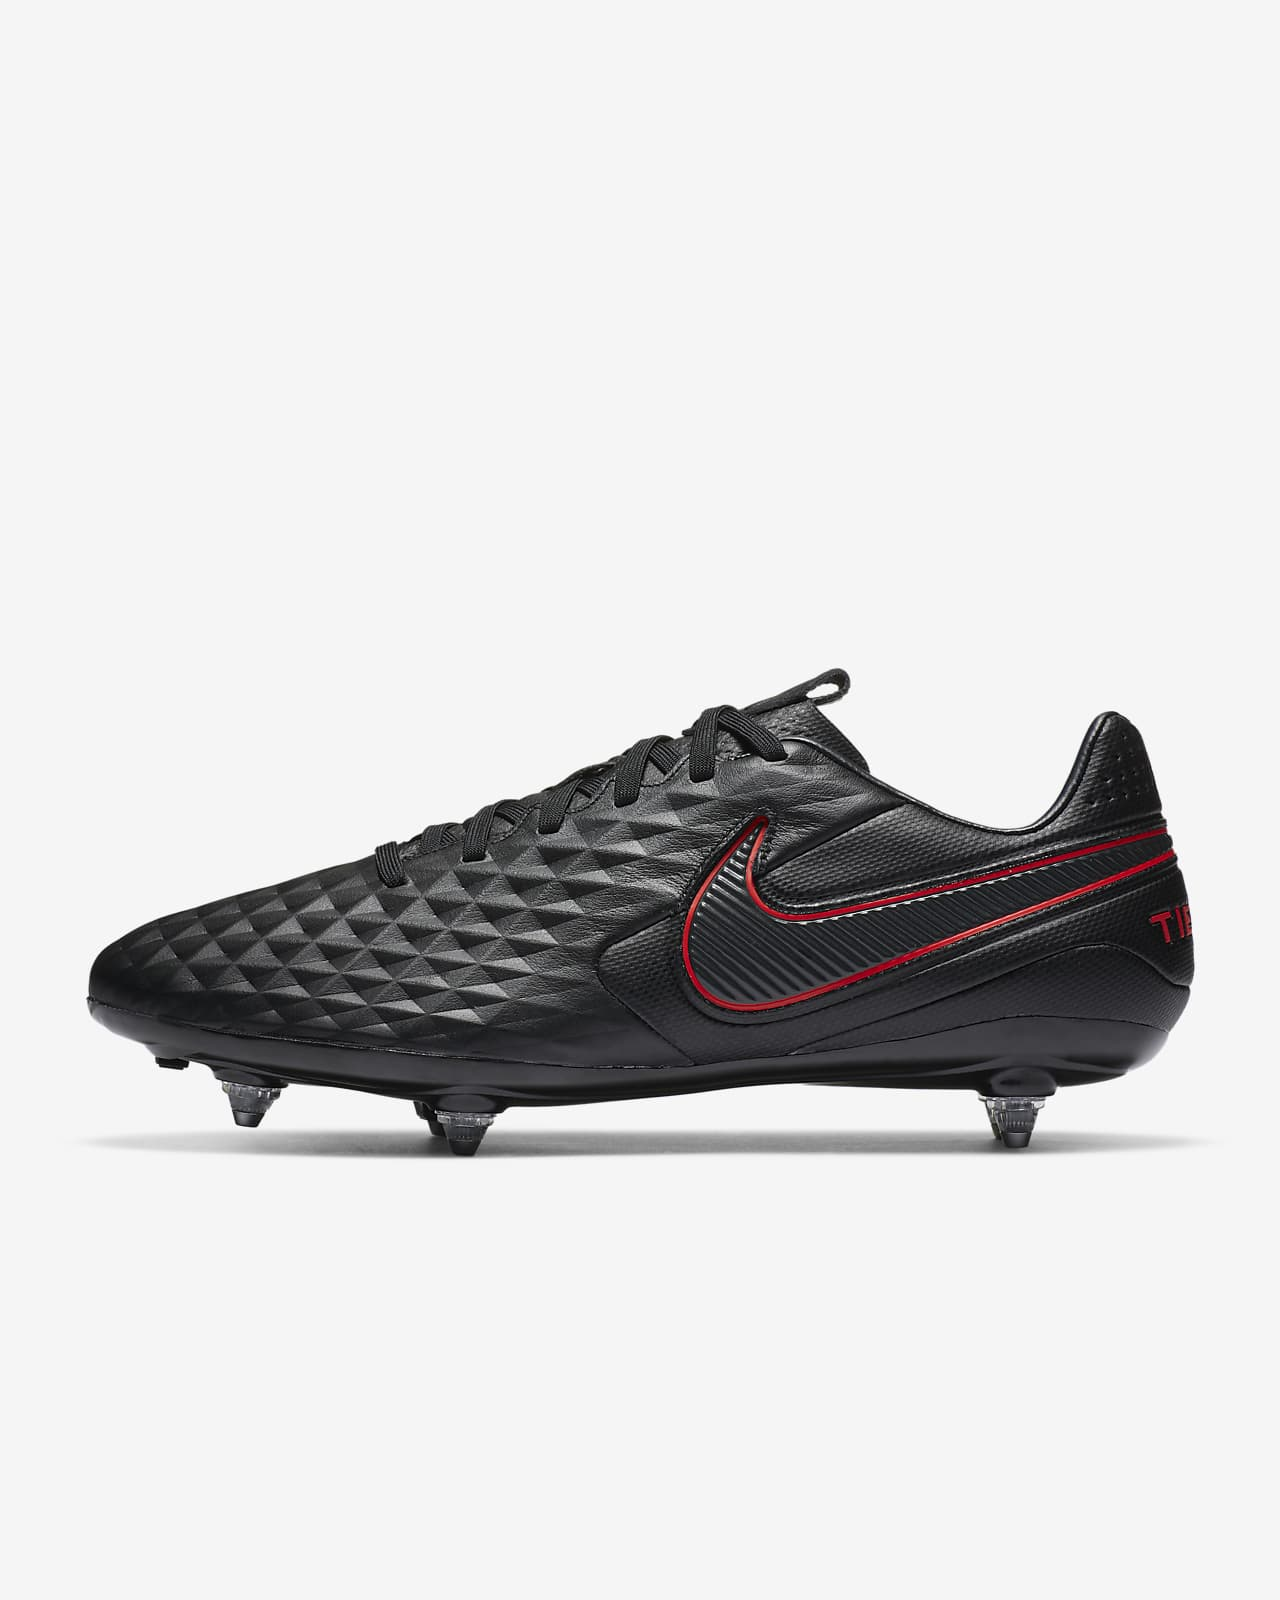 Gastos de envío Sano banda  Nike Tiempo Legend 8 Pro SG Soft-Ground Football Boot. Nike LU